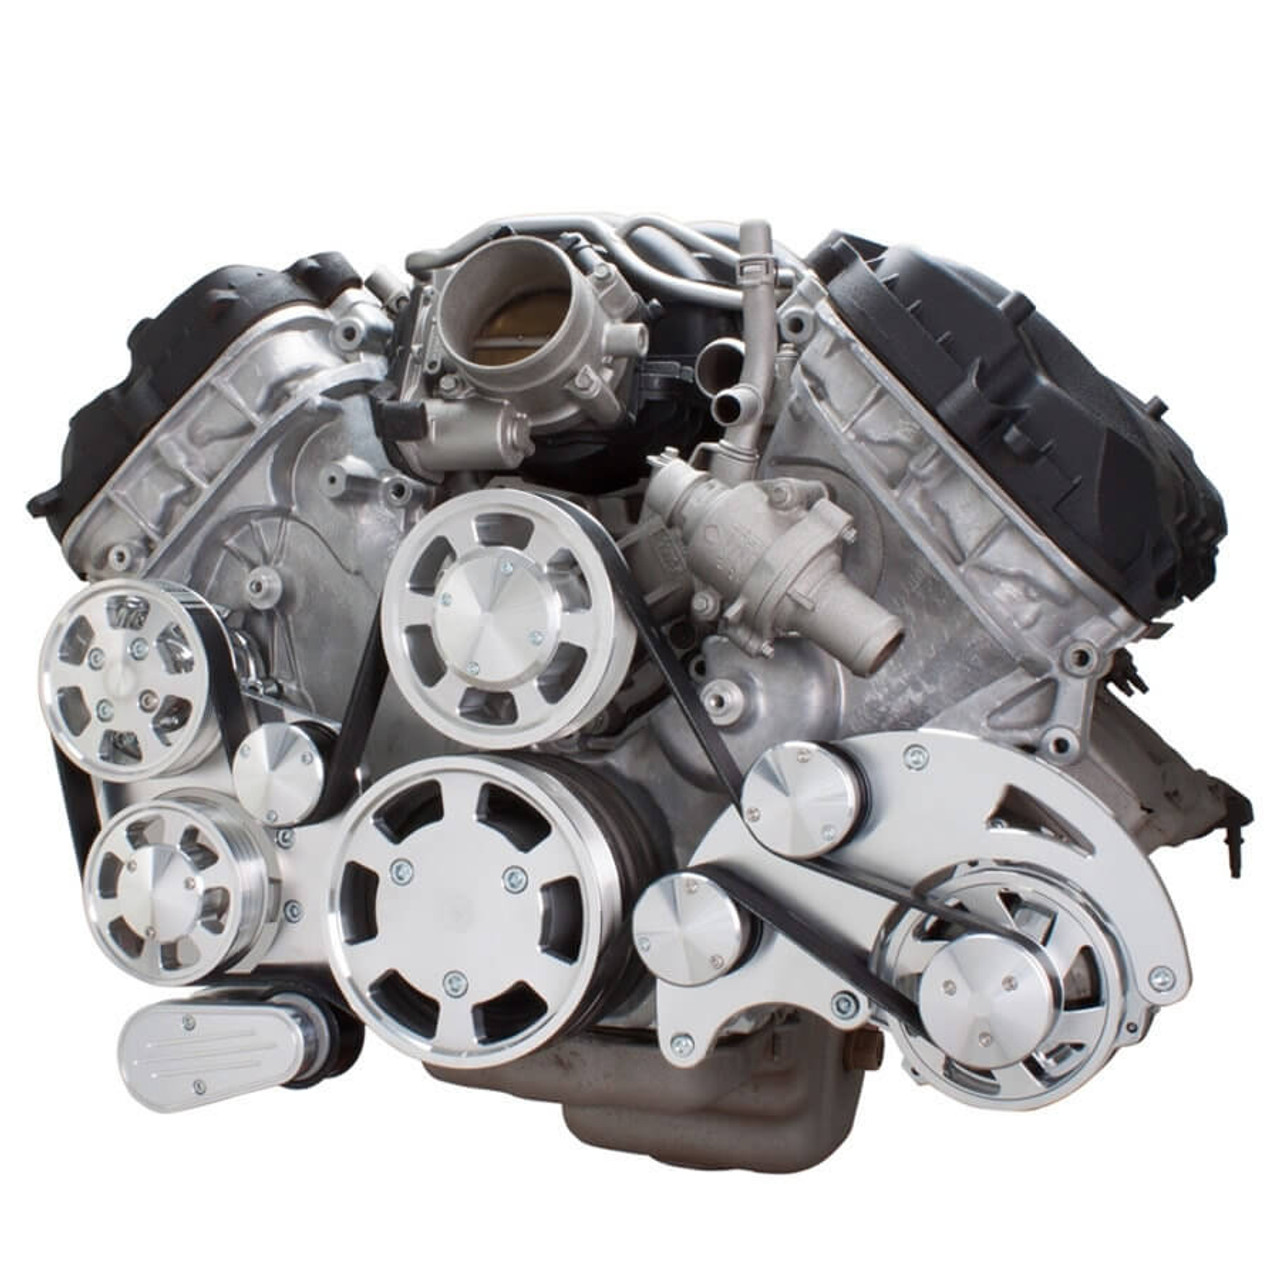 small resolution of serpentine system for ford coyote 5 0 alternator power steering